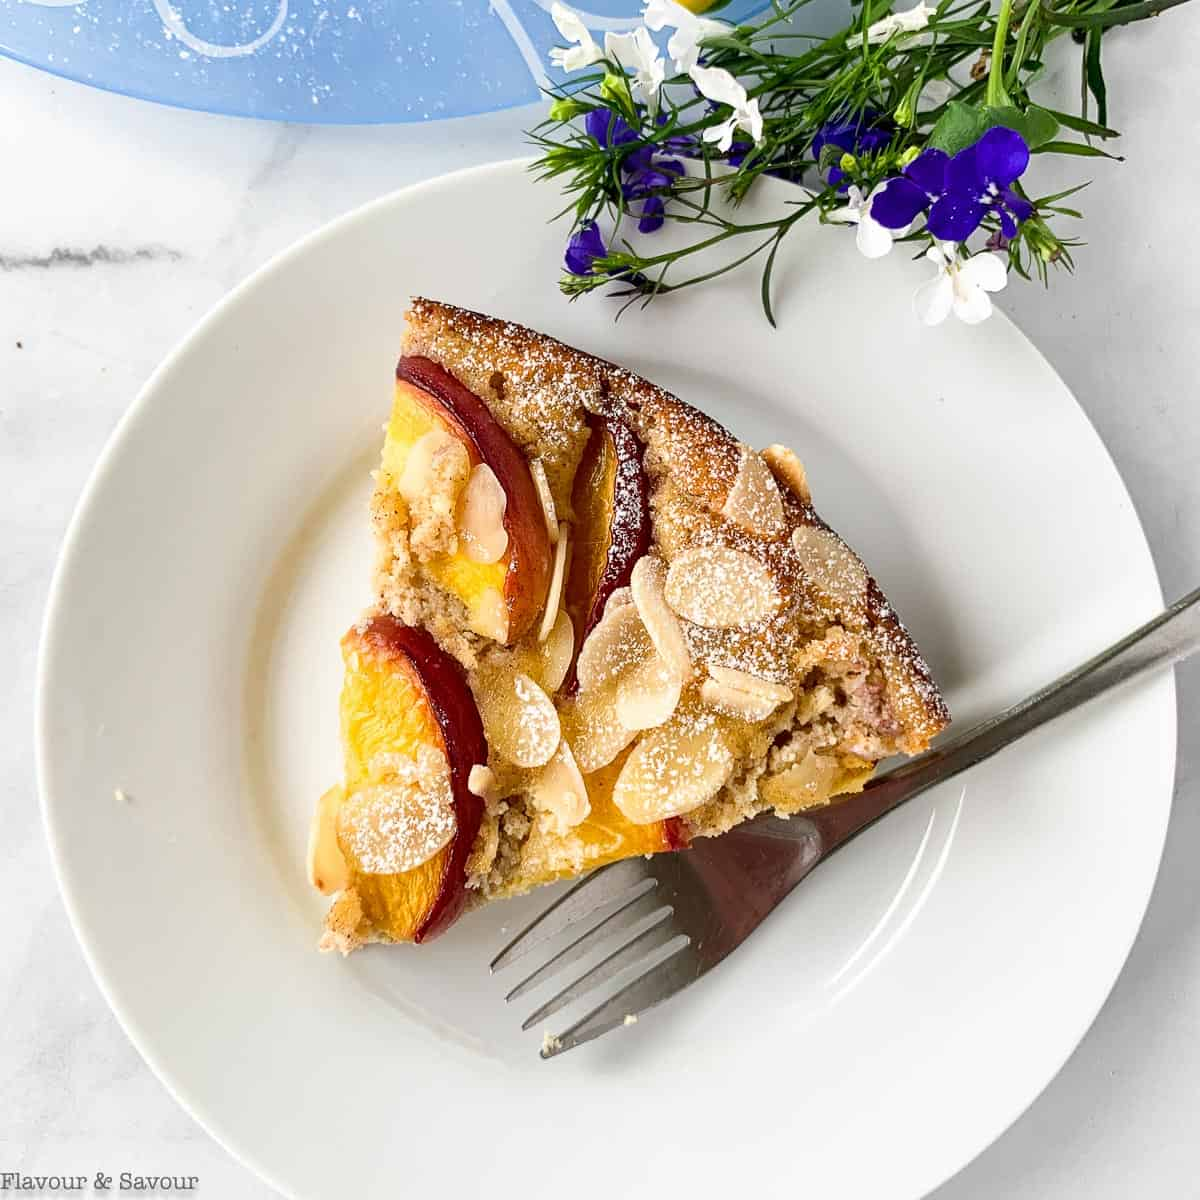 A slice of Gluten-Free Flourless Nectarine Ricotta Cake on a white plate with fresh blue and white flowers